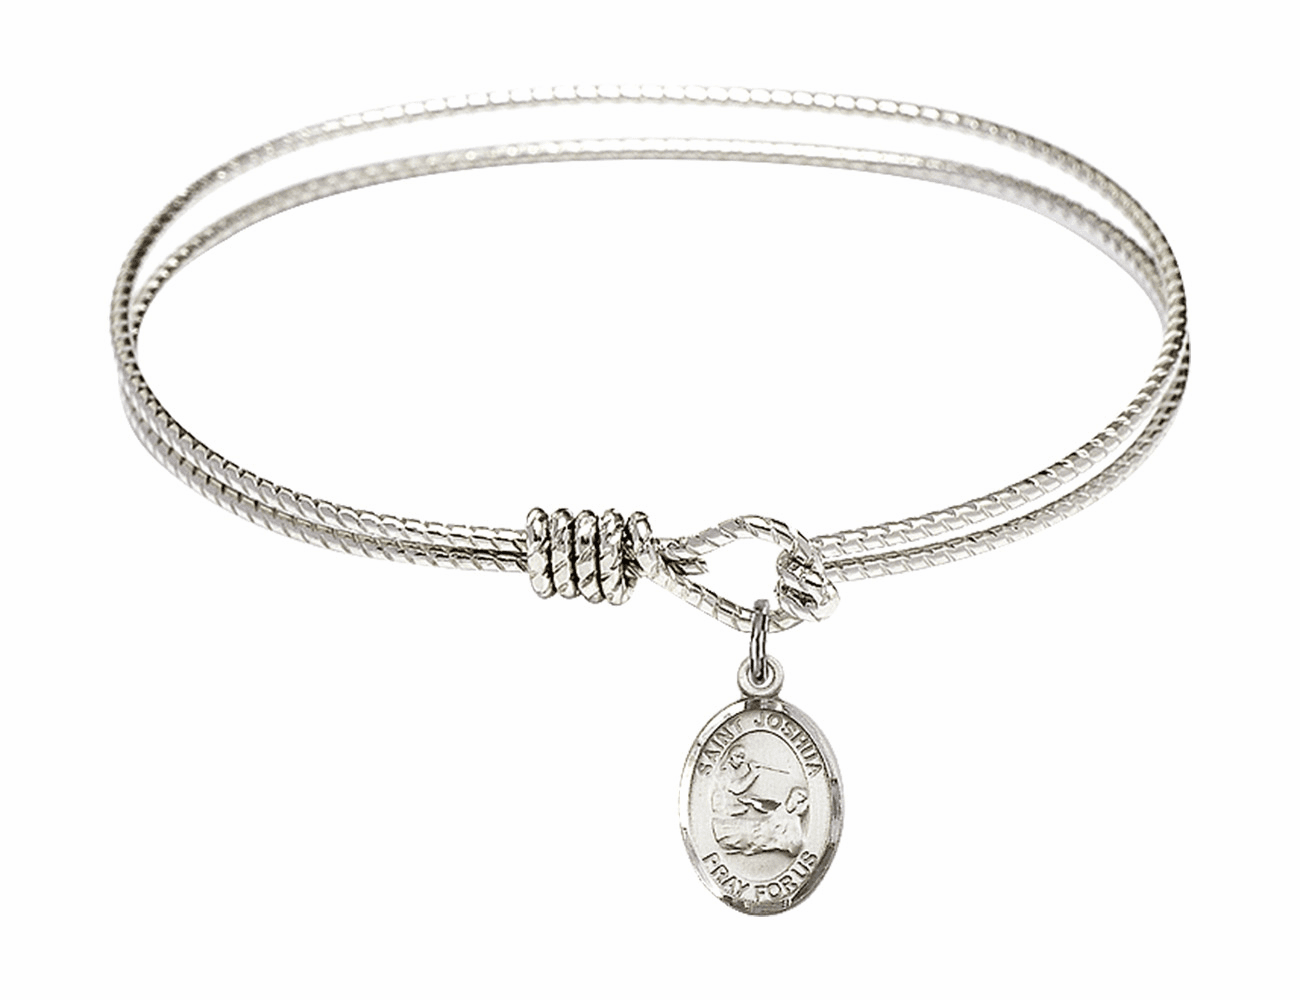 St Joshua Textured Bangle w/Sterling Charm Bracelet by Bliss